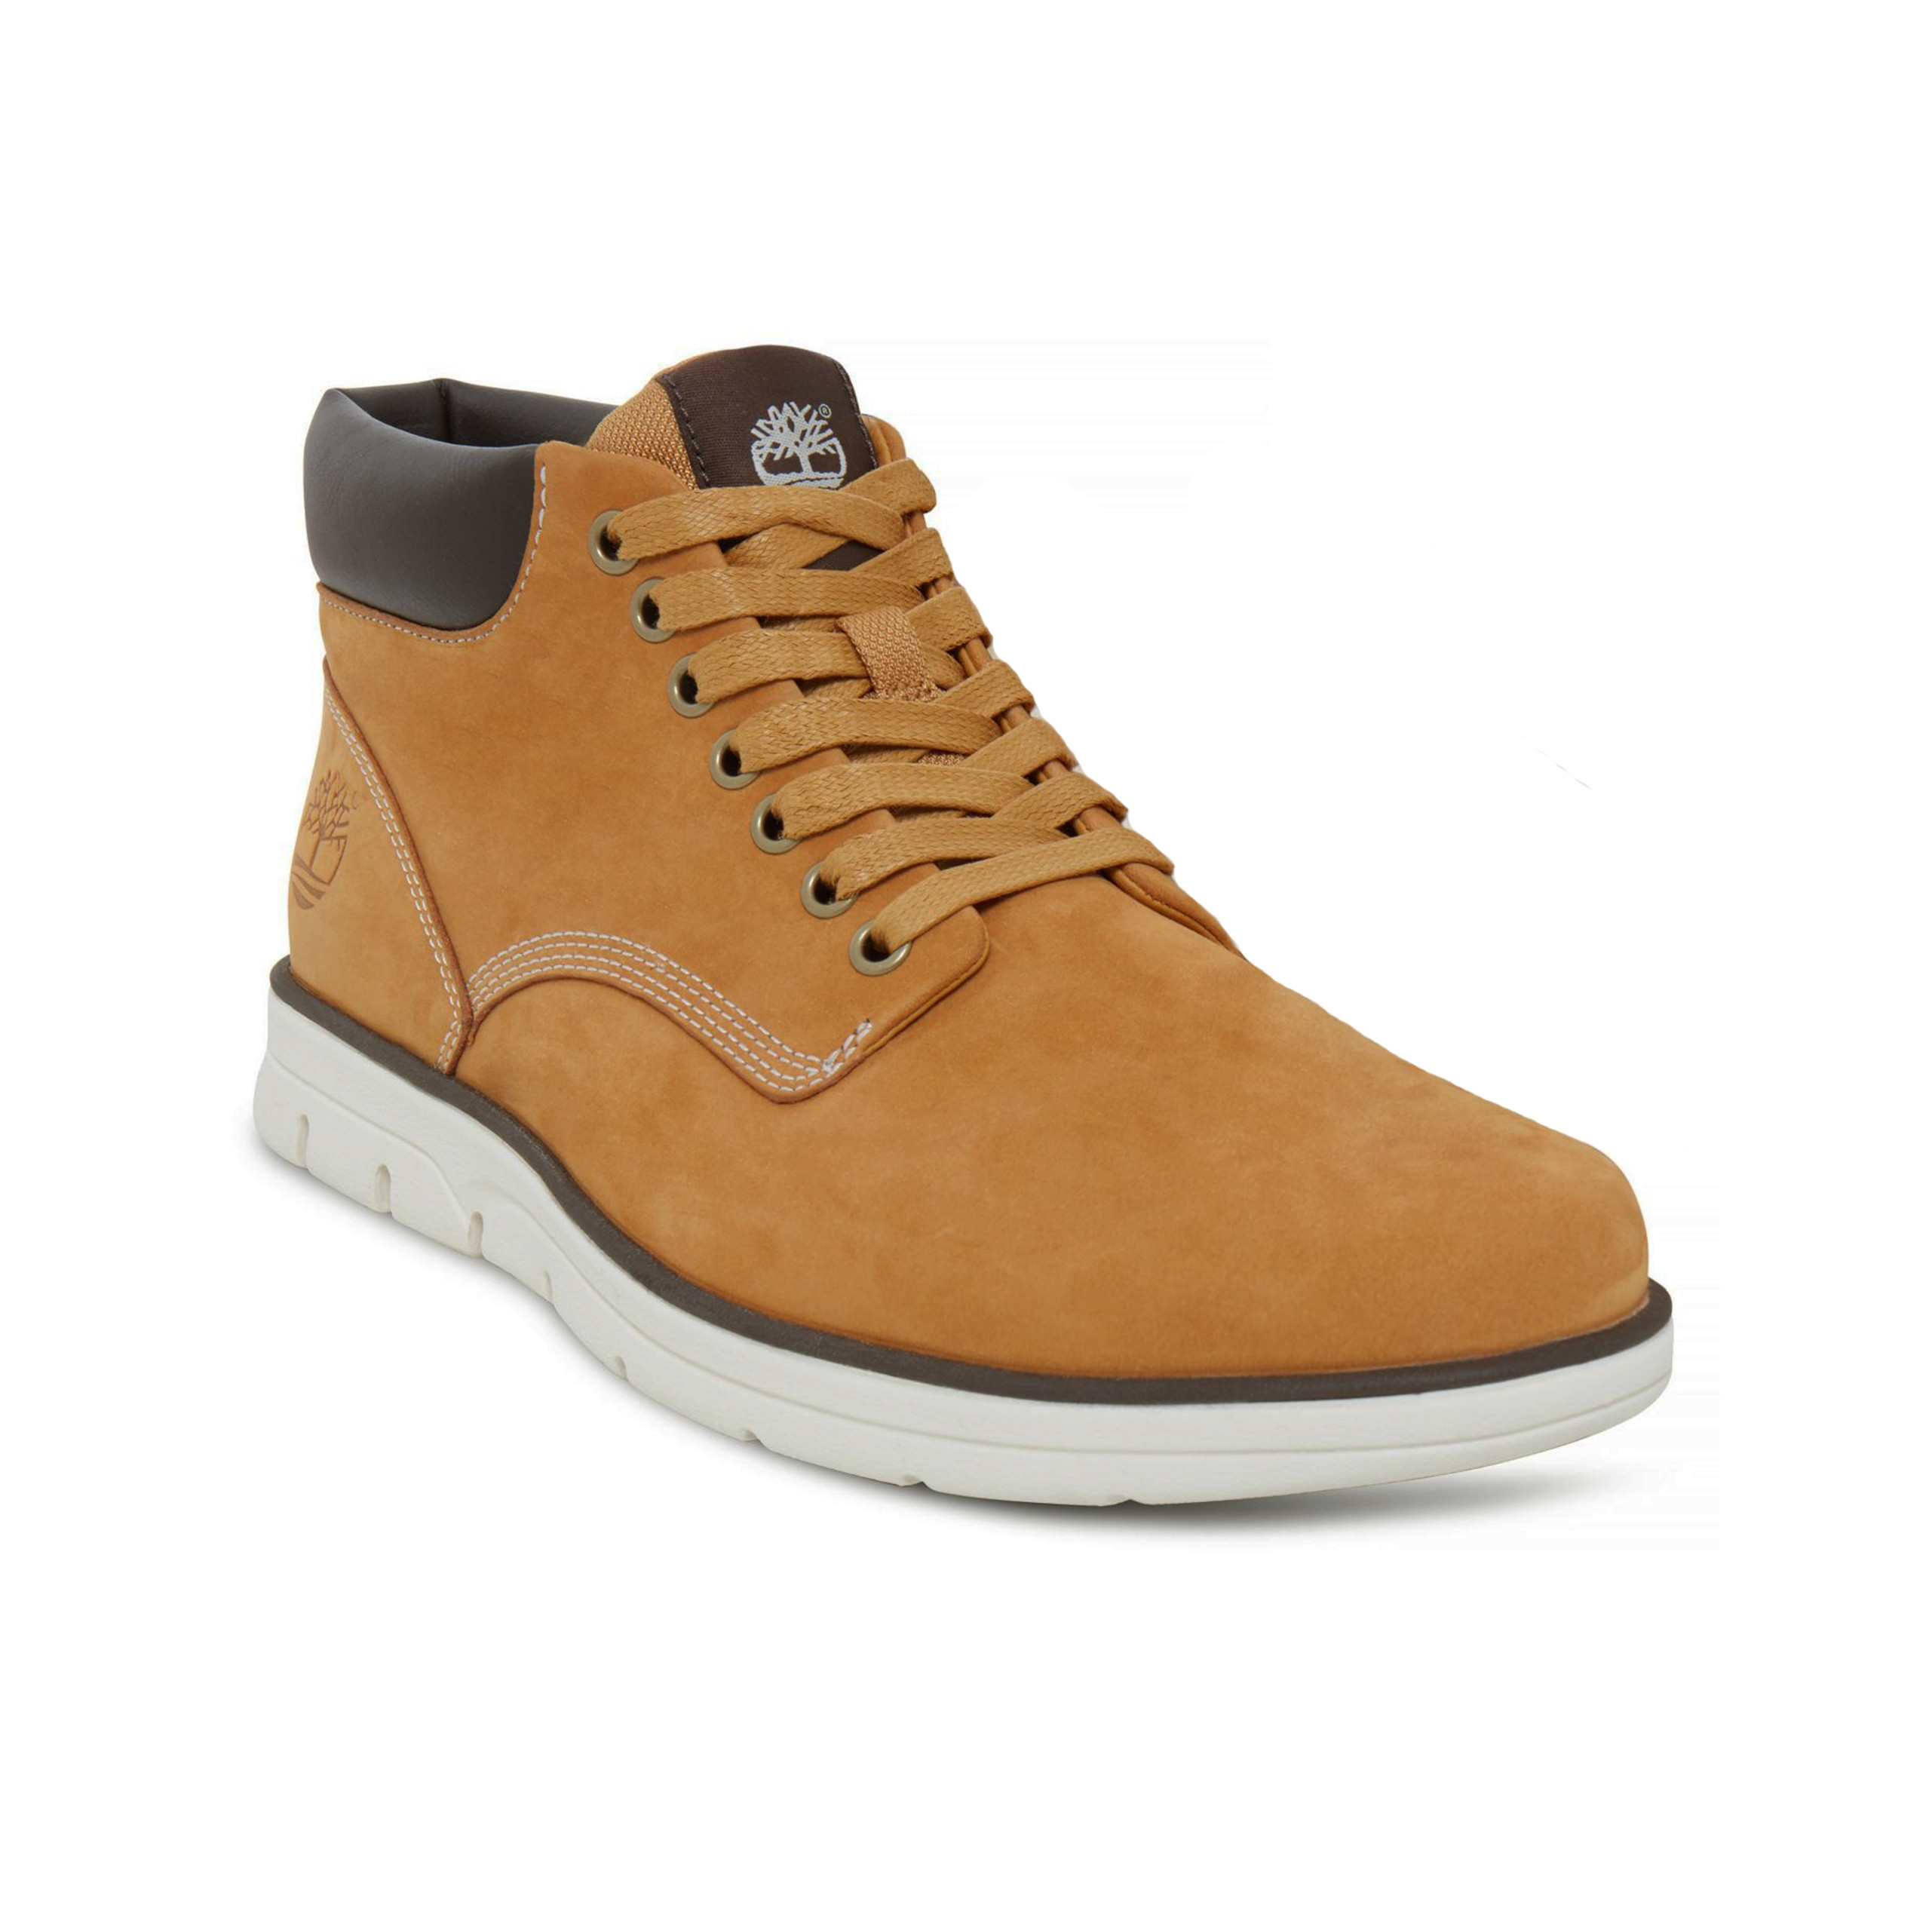 1293f797aa19 Timberland Mens Bradstreet Chukka Leather Boots Boots Le Wheat ...